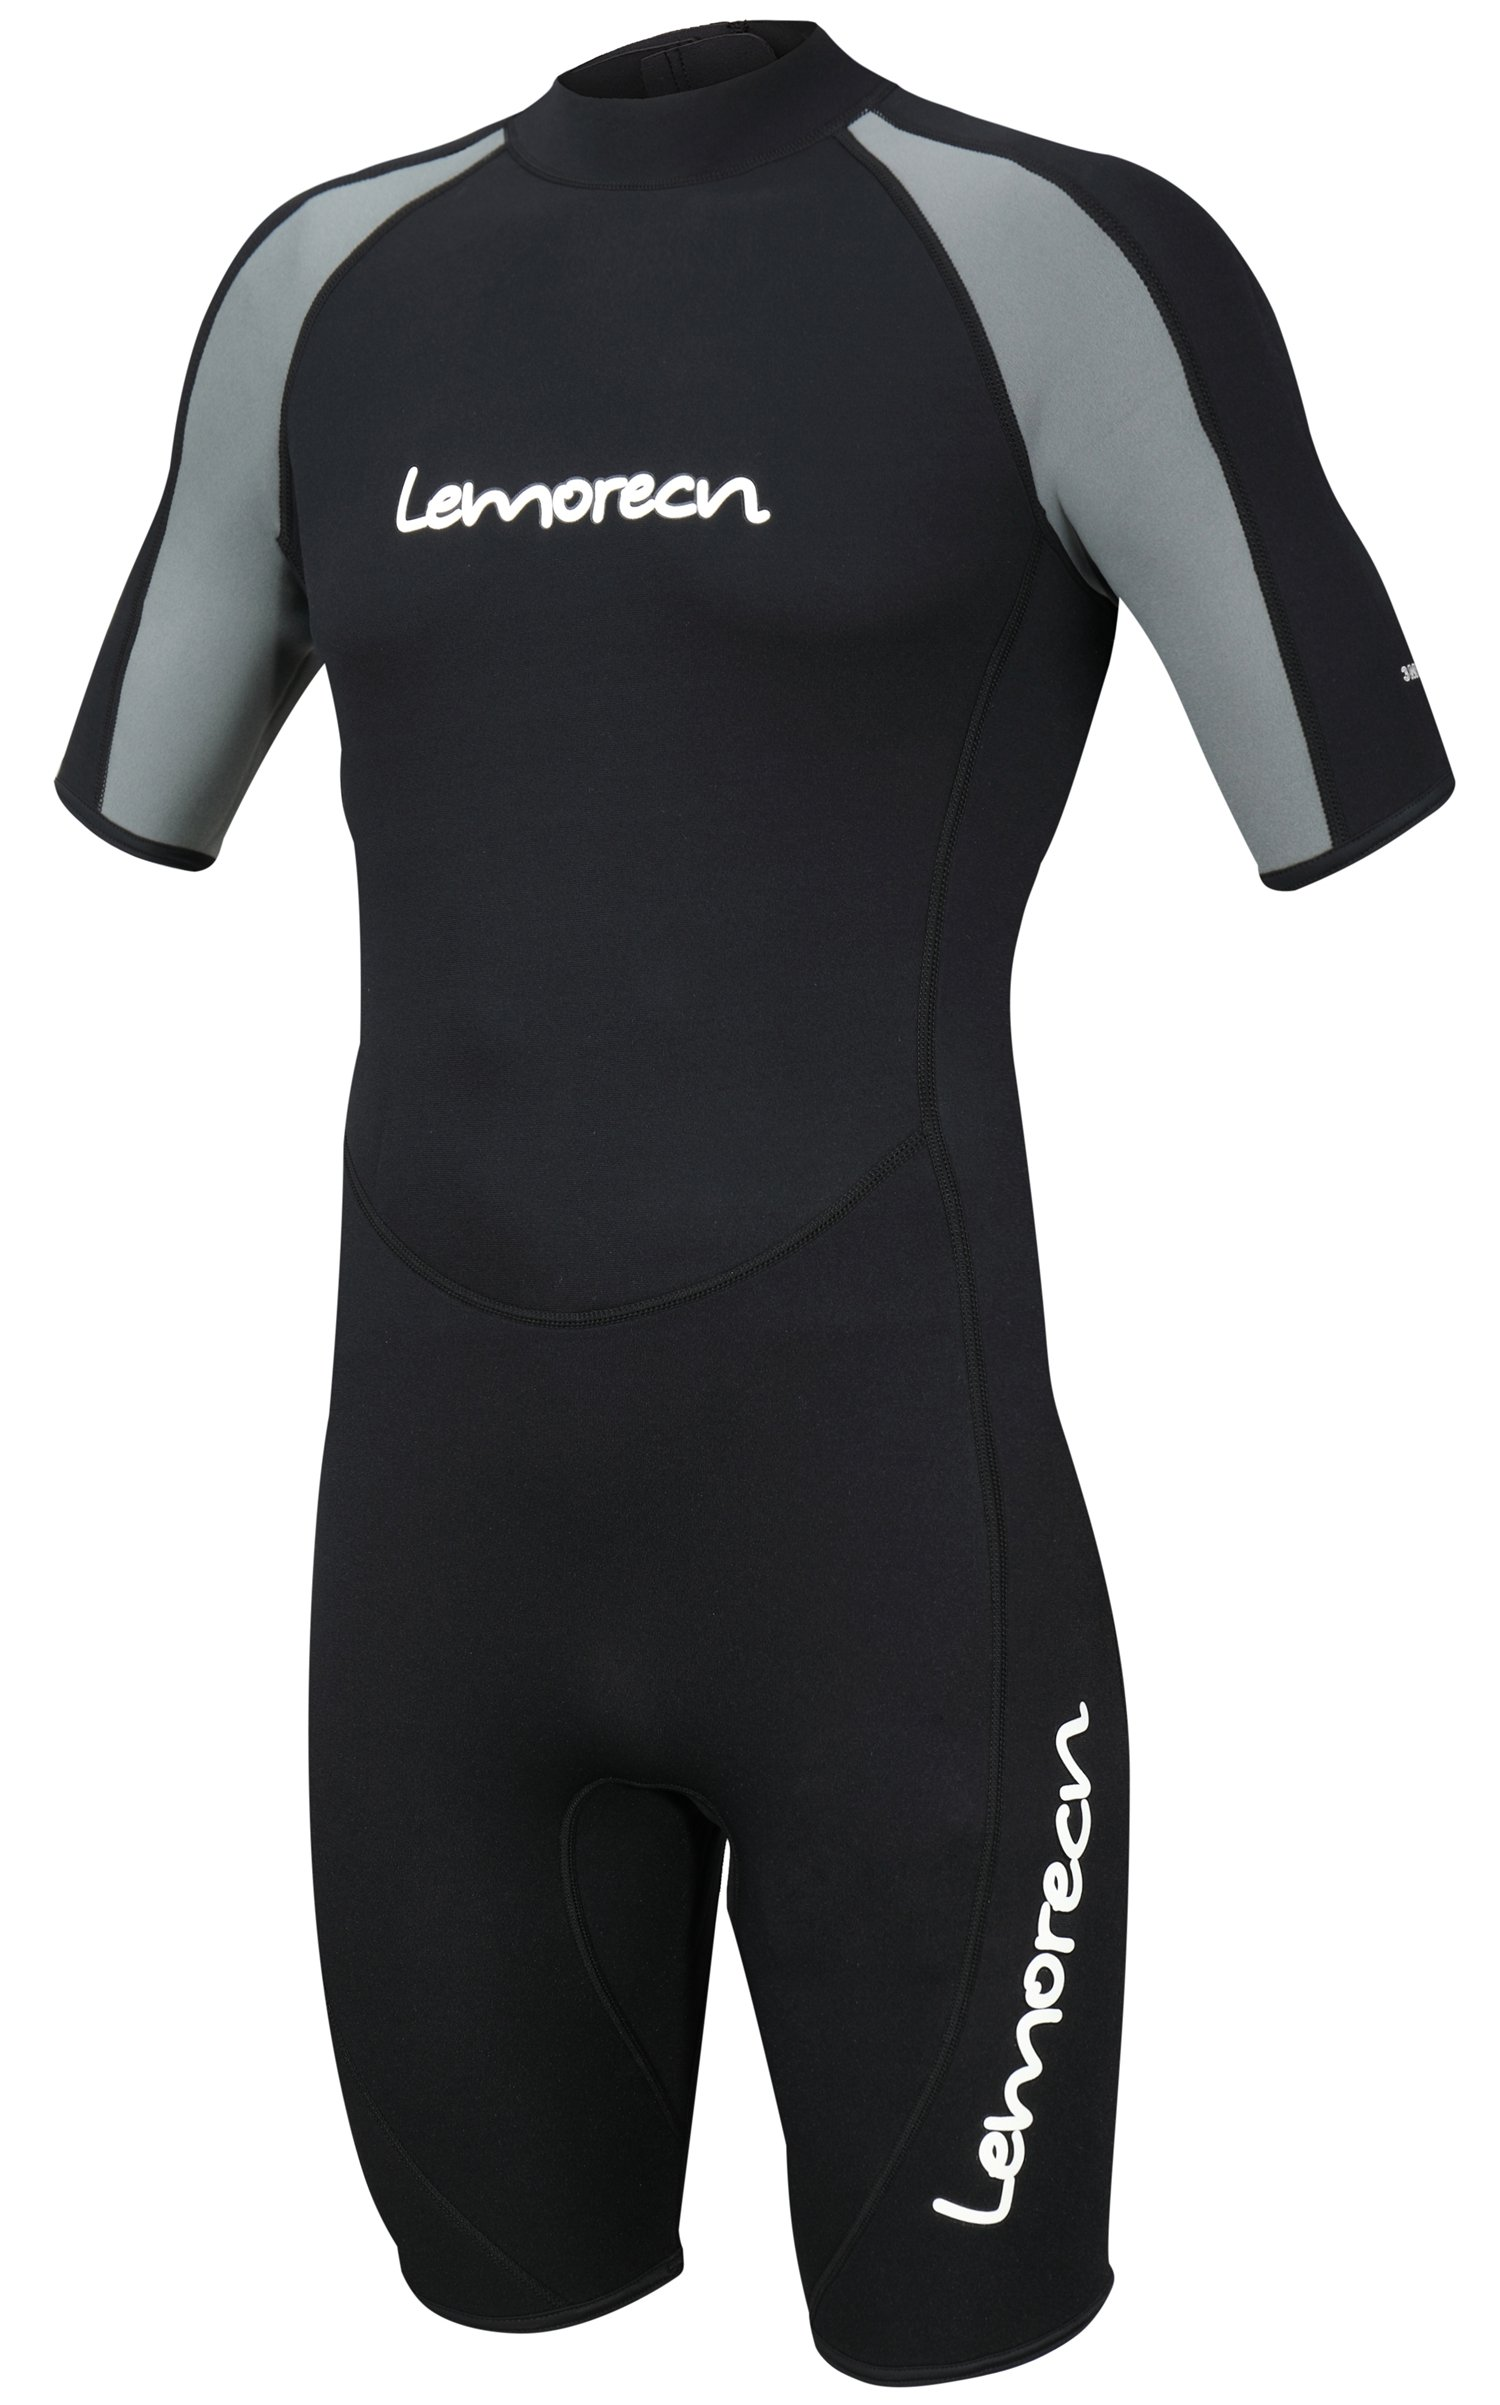 Lemorecn Wetsuits Mens Premium Neoprene Diving Suit 3mm Shorty Jumpsuit(3035blackgrey,L) by Lemorecn